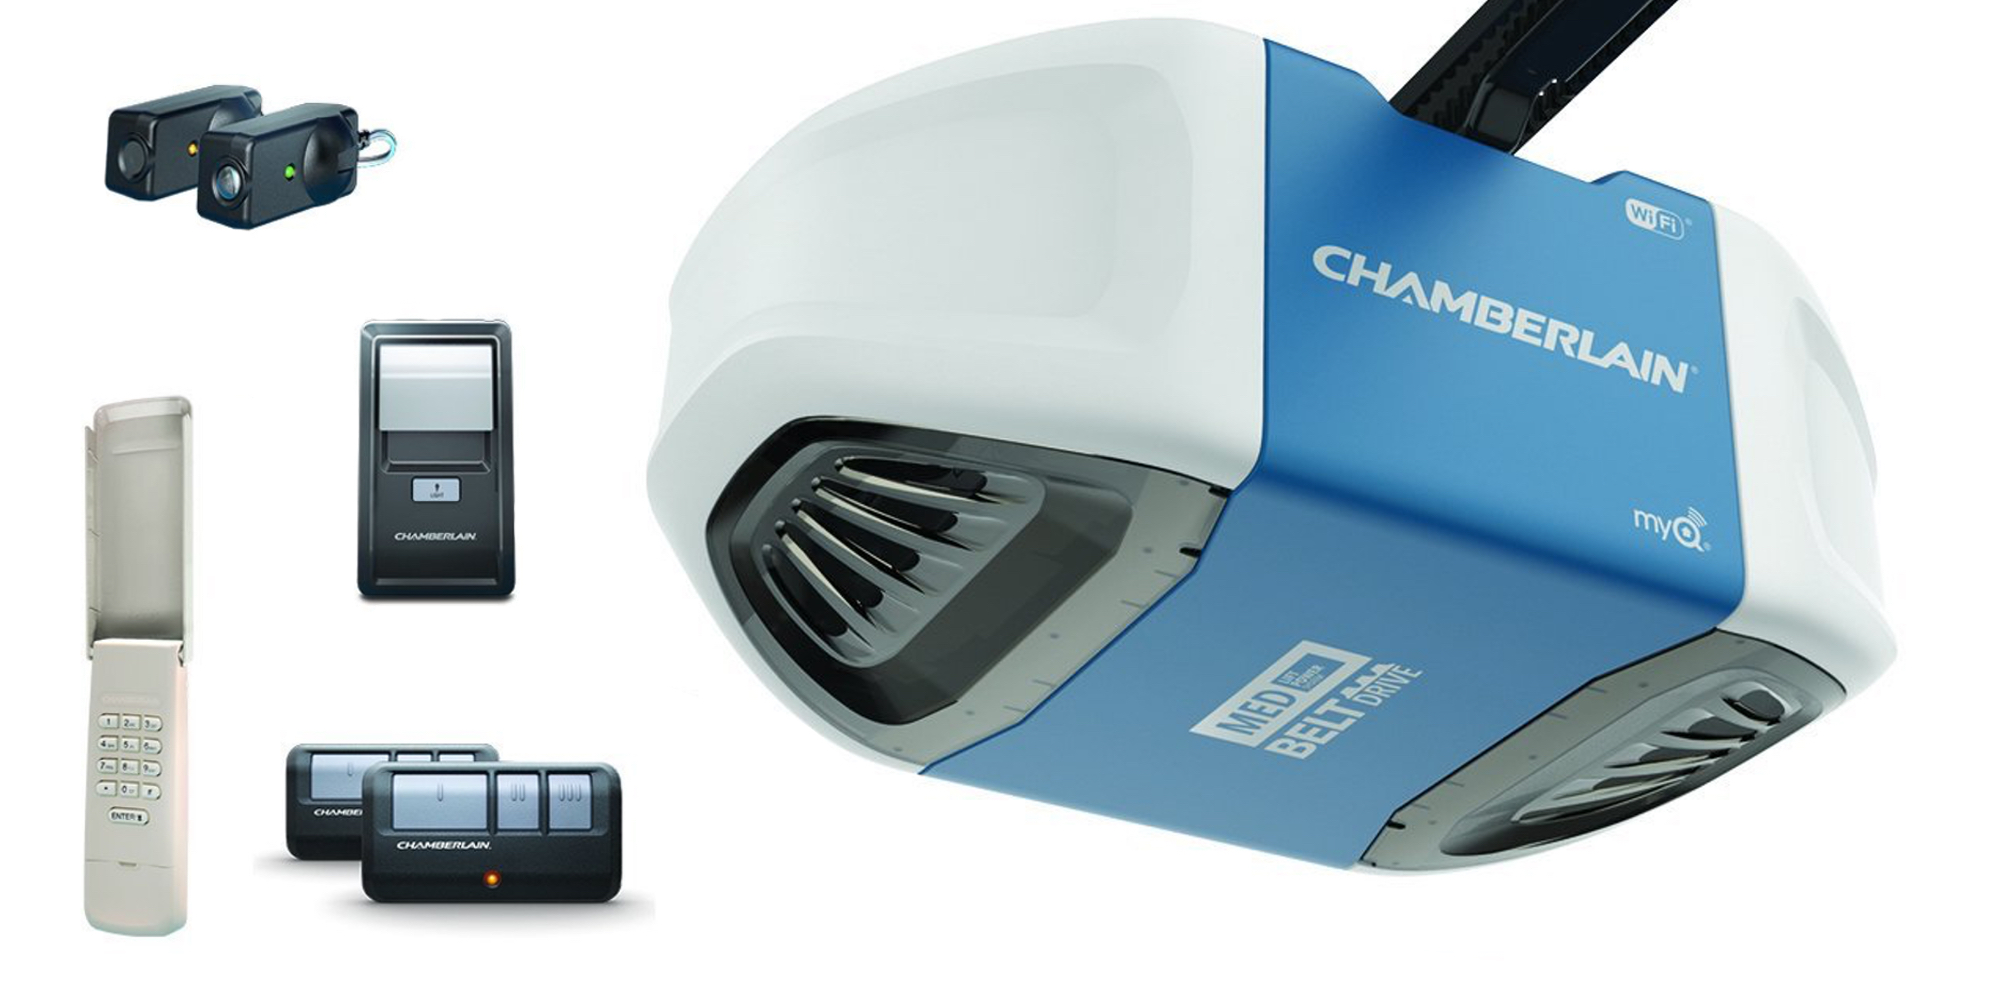 App Enabled Garage Door Opener Chamberlain 39s App Enabled Garage Door Opener Returns To